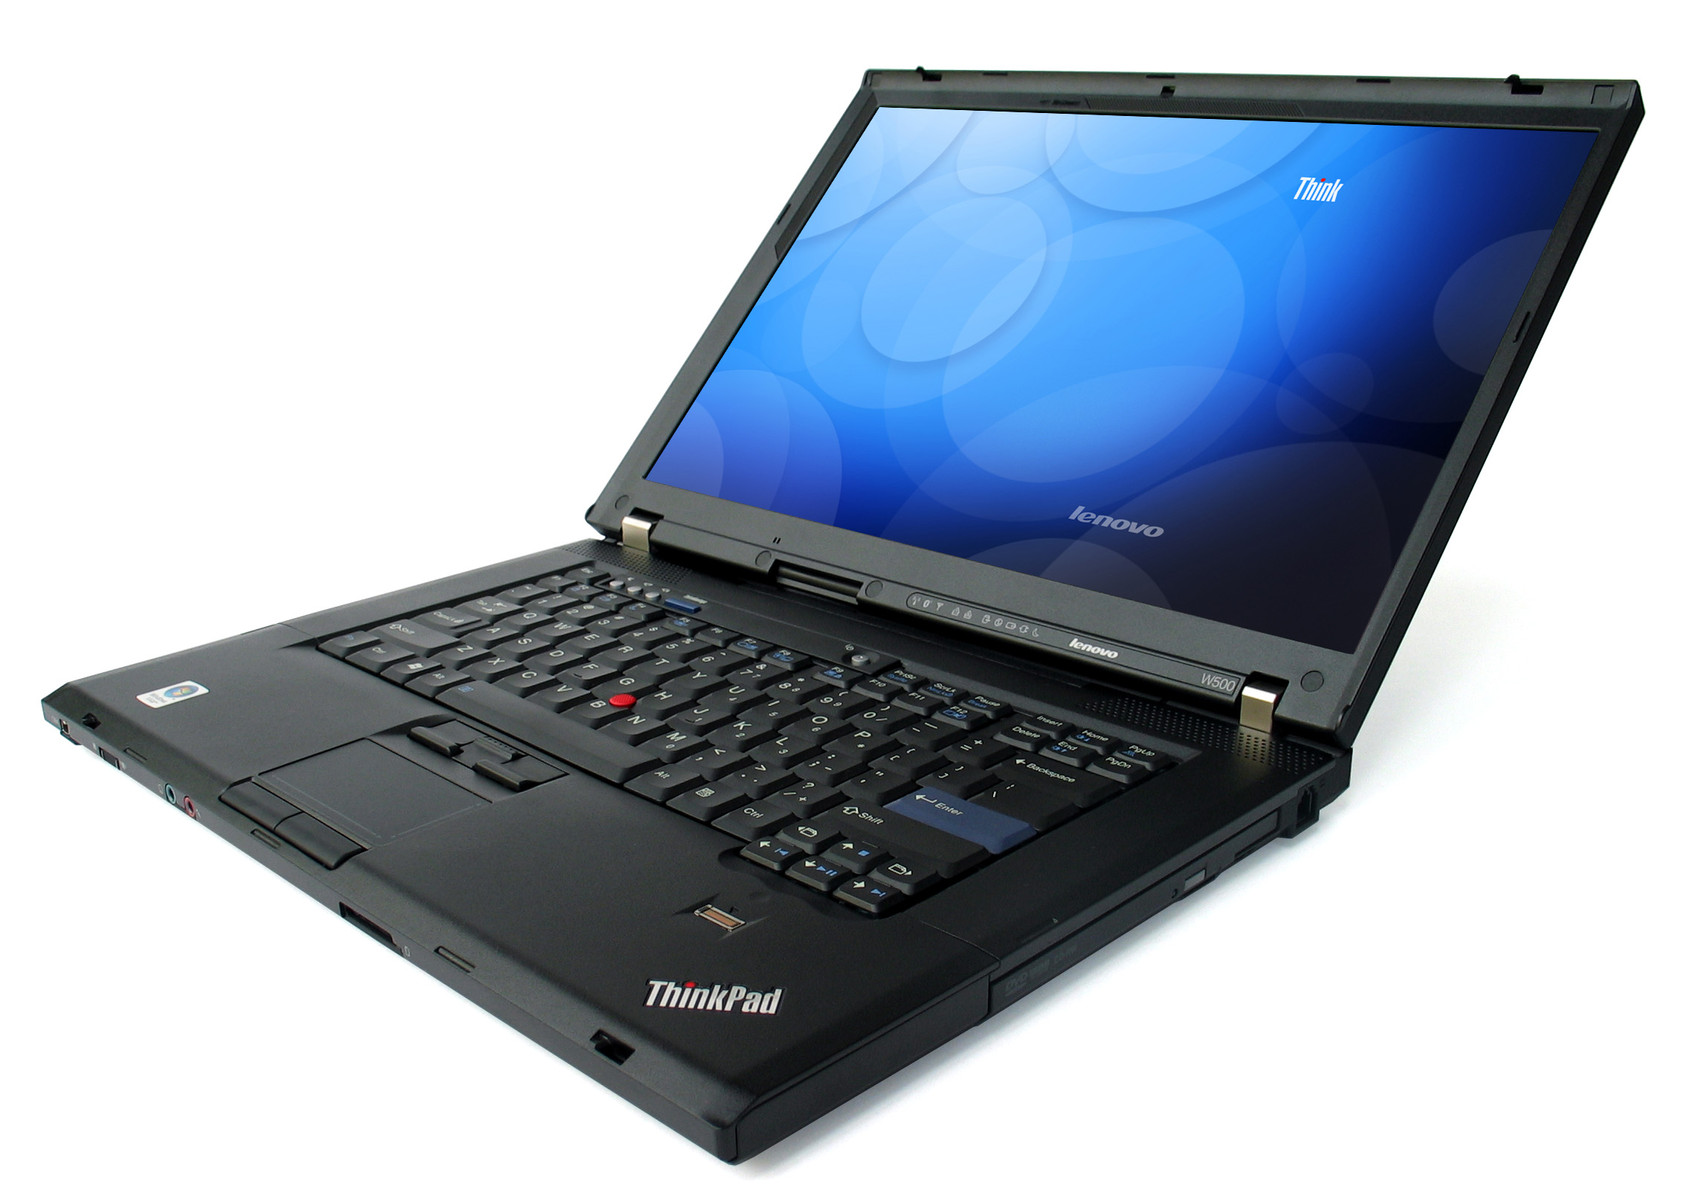 think pad With epic battery life, a durable design, a sharp display and the best laptop keyboard anywhere, the thinkpad t450s is the ultimate portable productivity powerhouse.